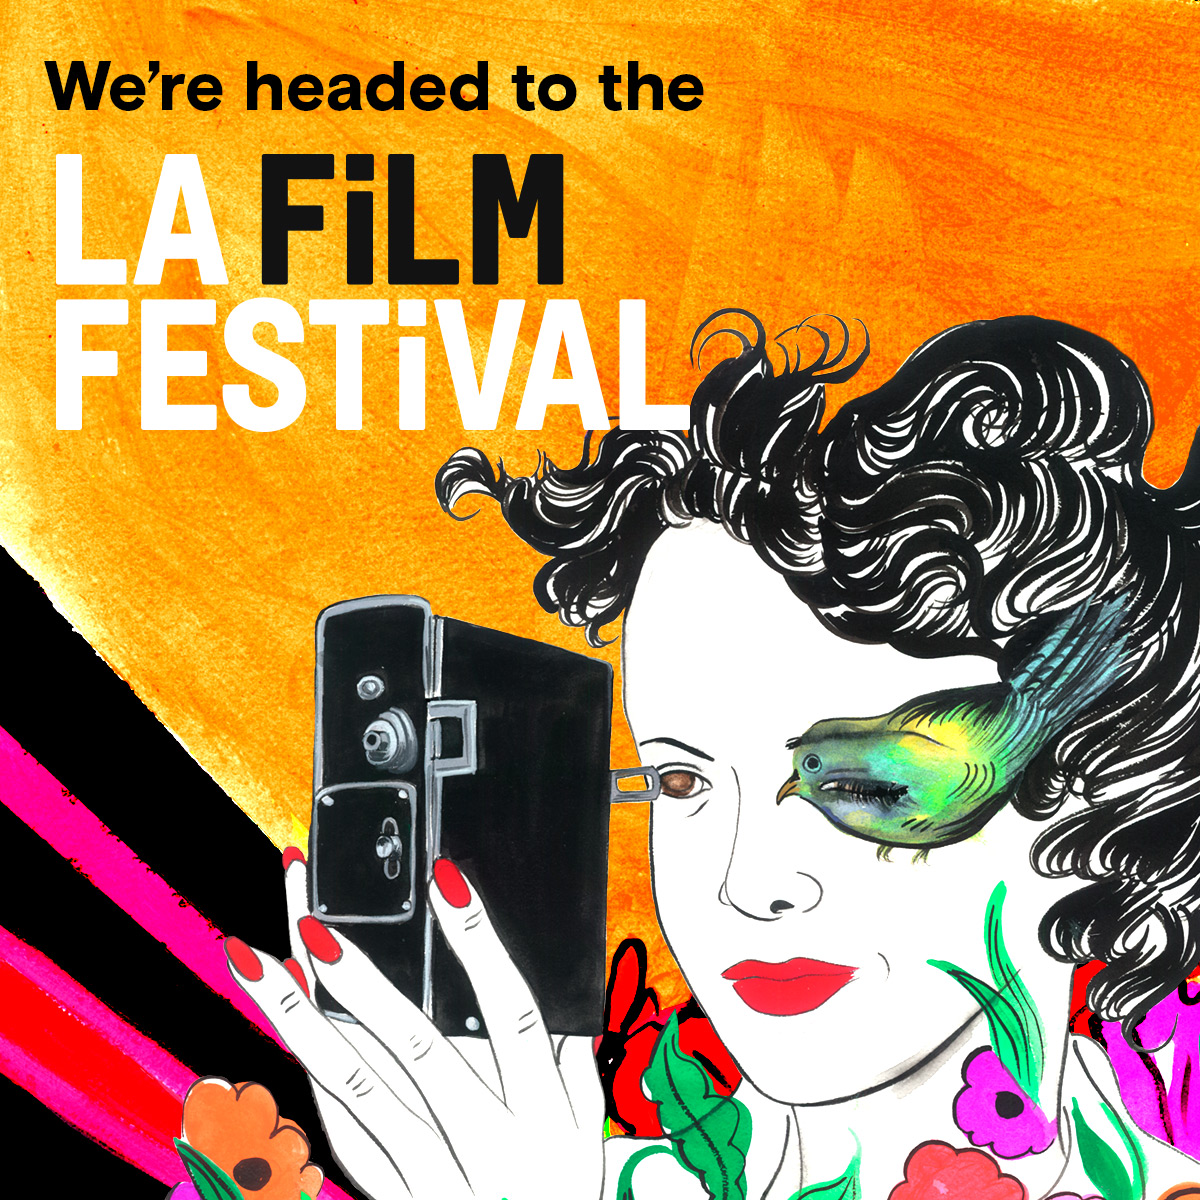 LAFF16 Filmmaker Announcement